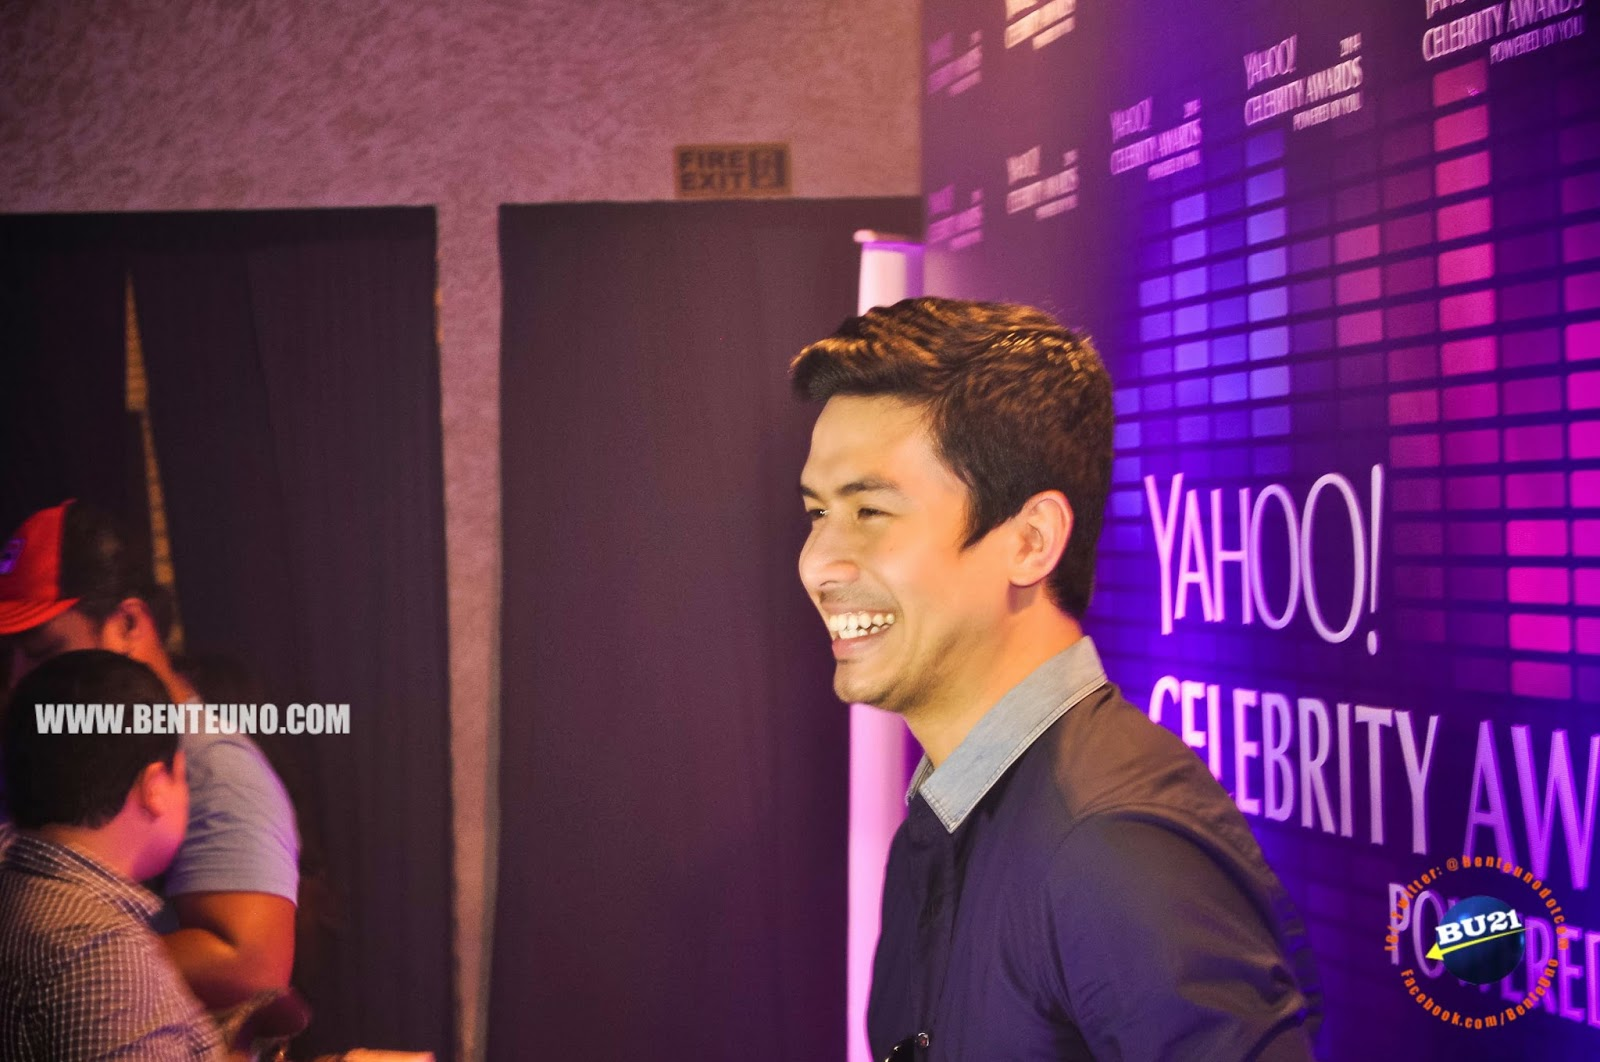 Christian Bautista during the Yahoo Celebrity Awards media launch